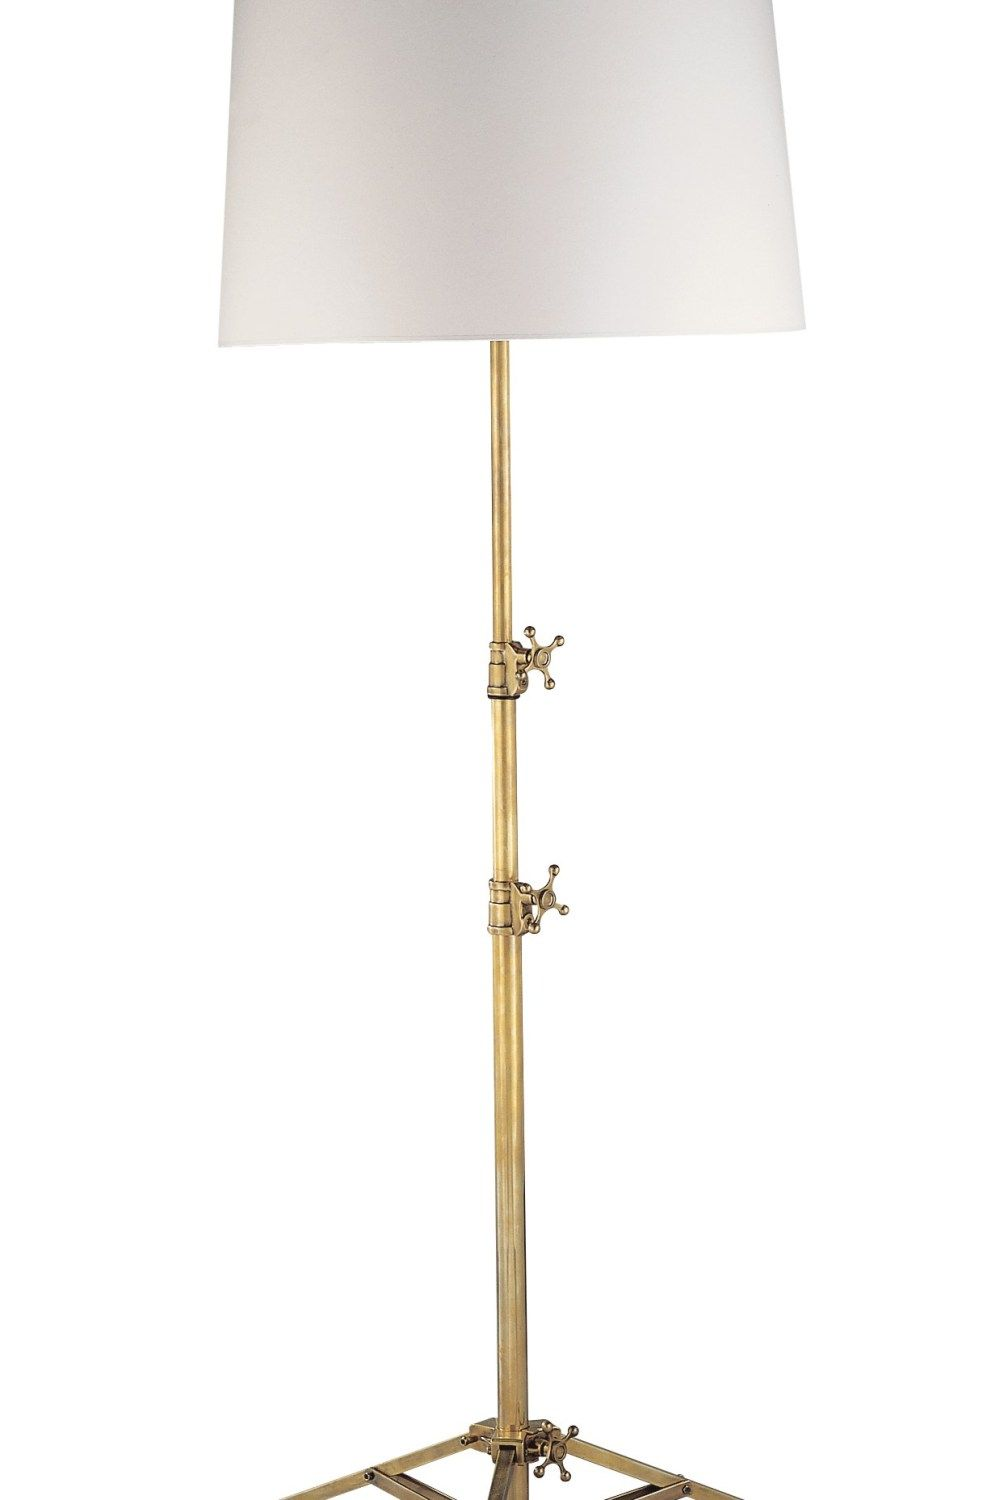 Large Lamp Shades In 2020 Lamp Lamp Shades Large Lamp Shade